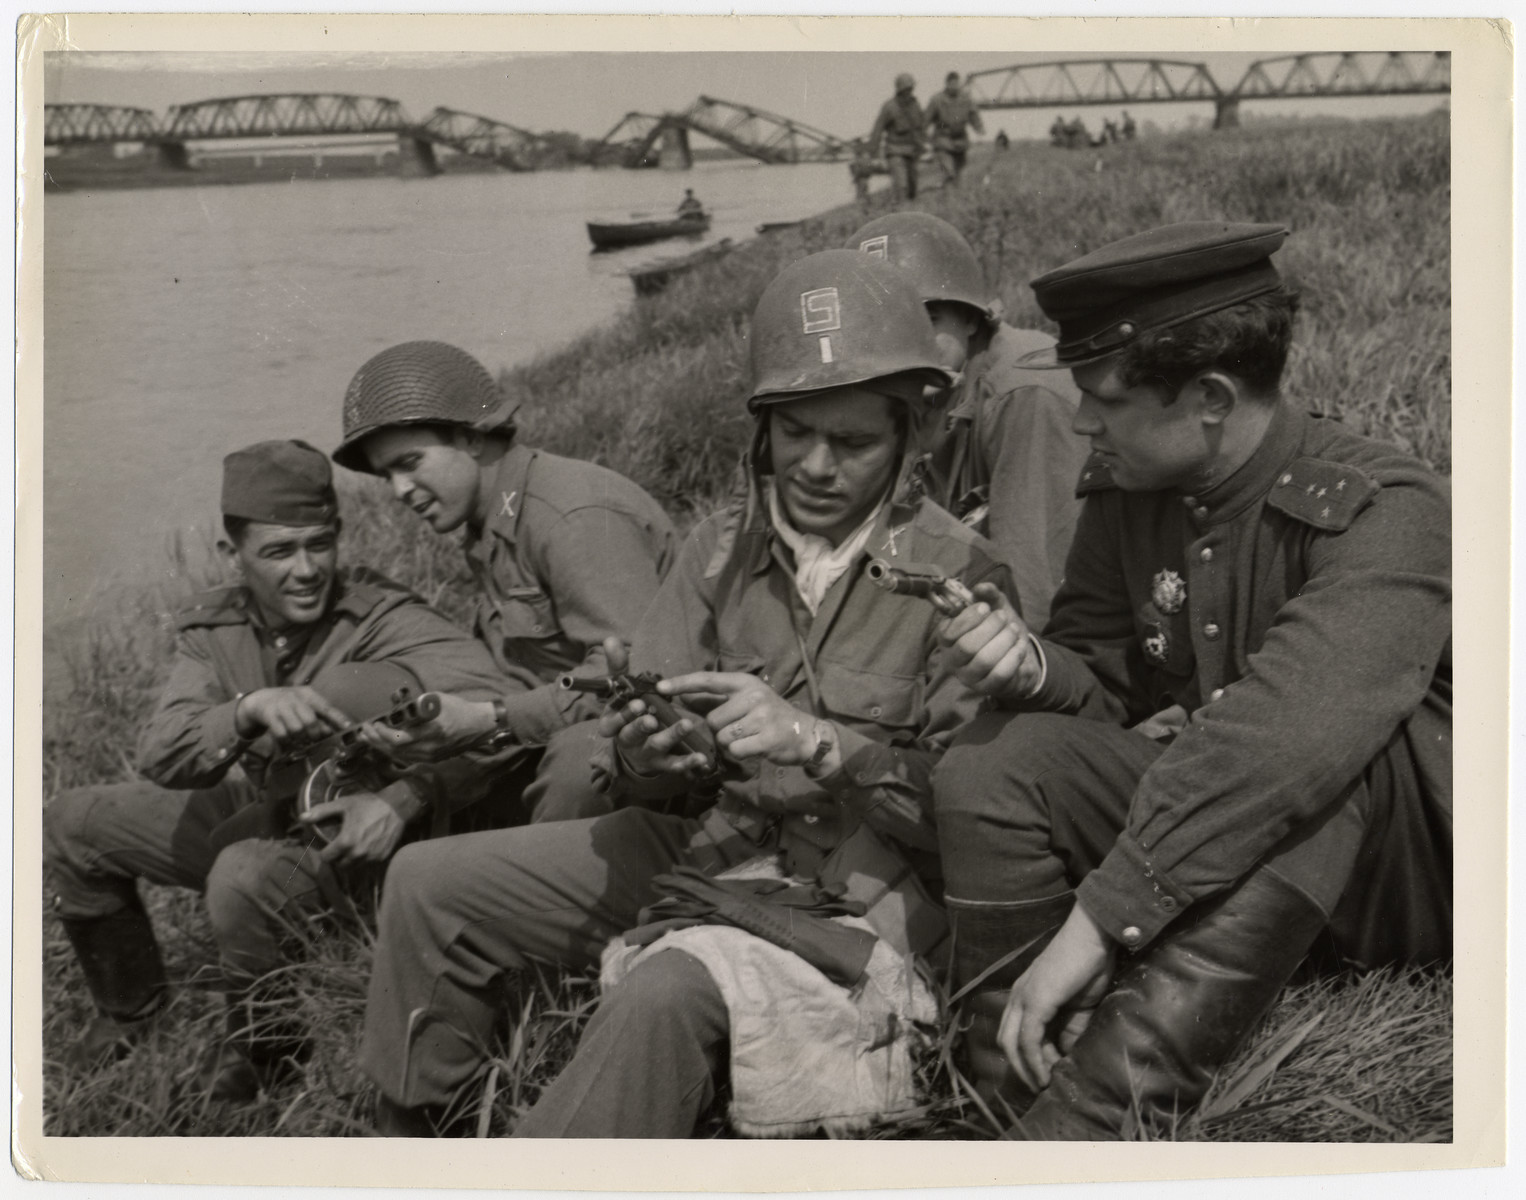 "Soviet and American soldiers show each other their pistols while relaxing on the banks of the Elbe River.  Original caption reads: ""U.S AND RUSSIAN FORCES LINK UP A linkup between the First U.S. Army and the Russian First Ukrainian Army was made on the Elbe River at the town of Torgau, approximately 60 miles south of Berlin, at 4:30 P.M. April 25, 1945. The historic joining was effected by patrols of the 273rd Infantry Regiment of the 69th Division of General Courtney Hodges' First U.S. Army and infantrymen of the 173rd Regiment of the 58th Guards Division of Marshal Ivan Stopanovich Koniev's First Ukrainian Army. A U.S. patrol of four men and met Russian infantrymen and brought back four Russian officers to 69th Division headquarters. The following day, April 26, formal meetings were held between the high Soviet and U.S. officers near the Elbe at Tergau. To facilitate the linkup and to clearly mark the area held by the First U.S. Army., General Hodges' troops advanced to the line of the Huldo River, where they awaited the Red Army forces. The choice of such an easily recognized natural feature eliminated the chances of tragic cases of mistaken identity by either of the allies.  THIS PHOTO SHOWS; Russian and American soldiers examine each other's weapons following the historic linkup. From left to right: Thomas Federovitch Alexander Paualov of Newgrad, Ukraine: Lieutenant Ralph Phillips of Union, South Carolina; Lieutenant Dwight Brooks of Los Angeles, California, and Captain Michael Organez of Dubnel. In the foreground, the blasted bridge over the Elbe may be seen. CWI Staff Photo by George Greb."""